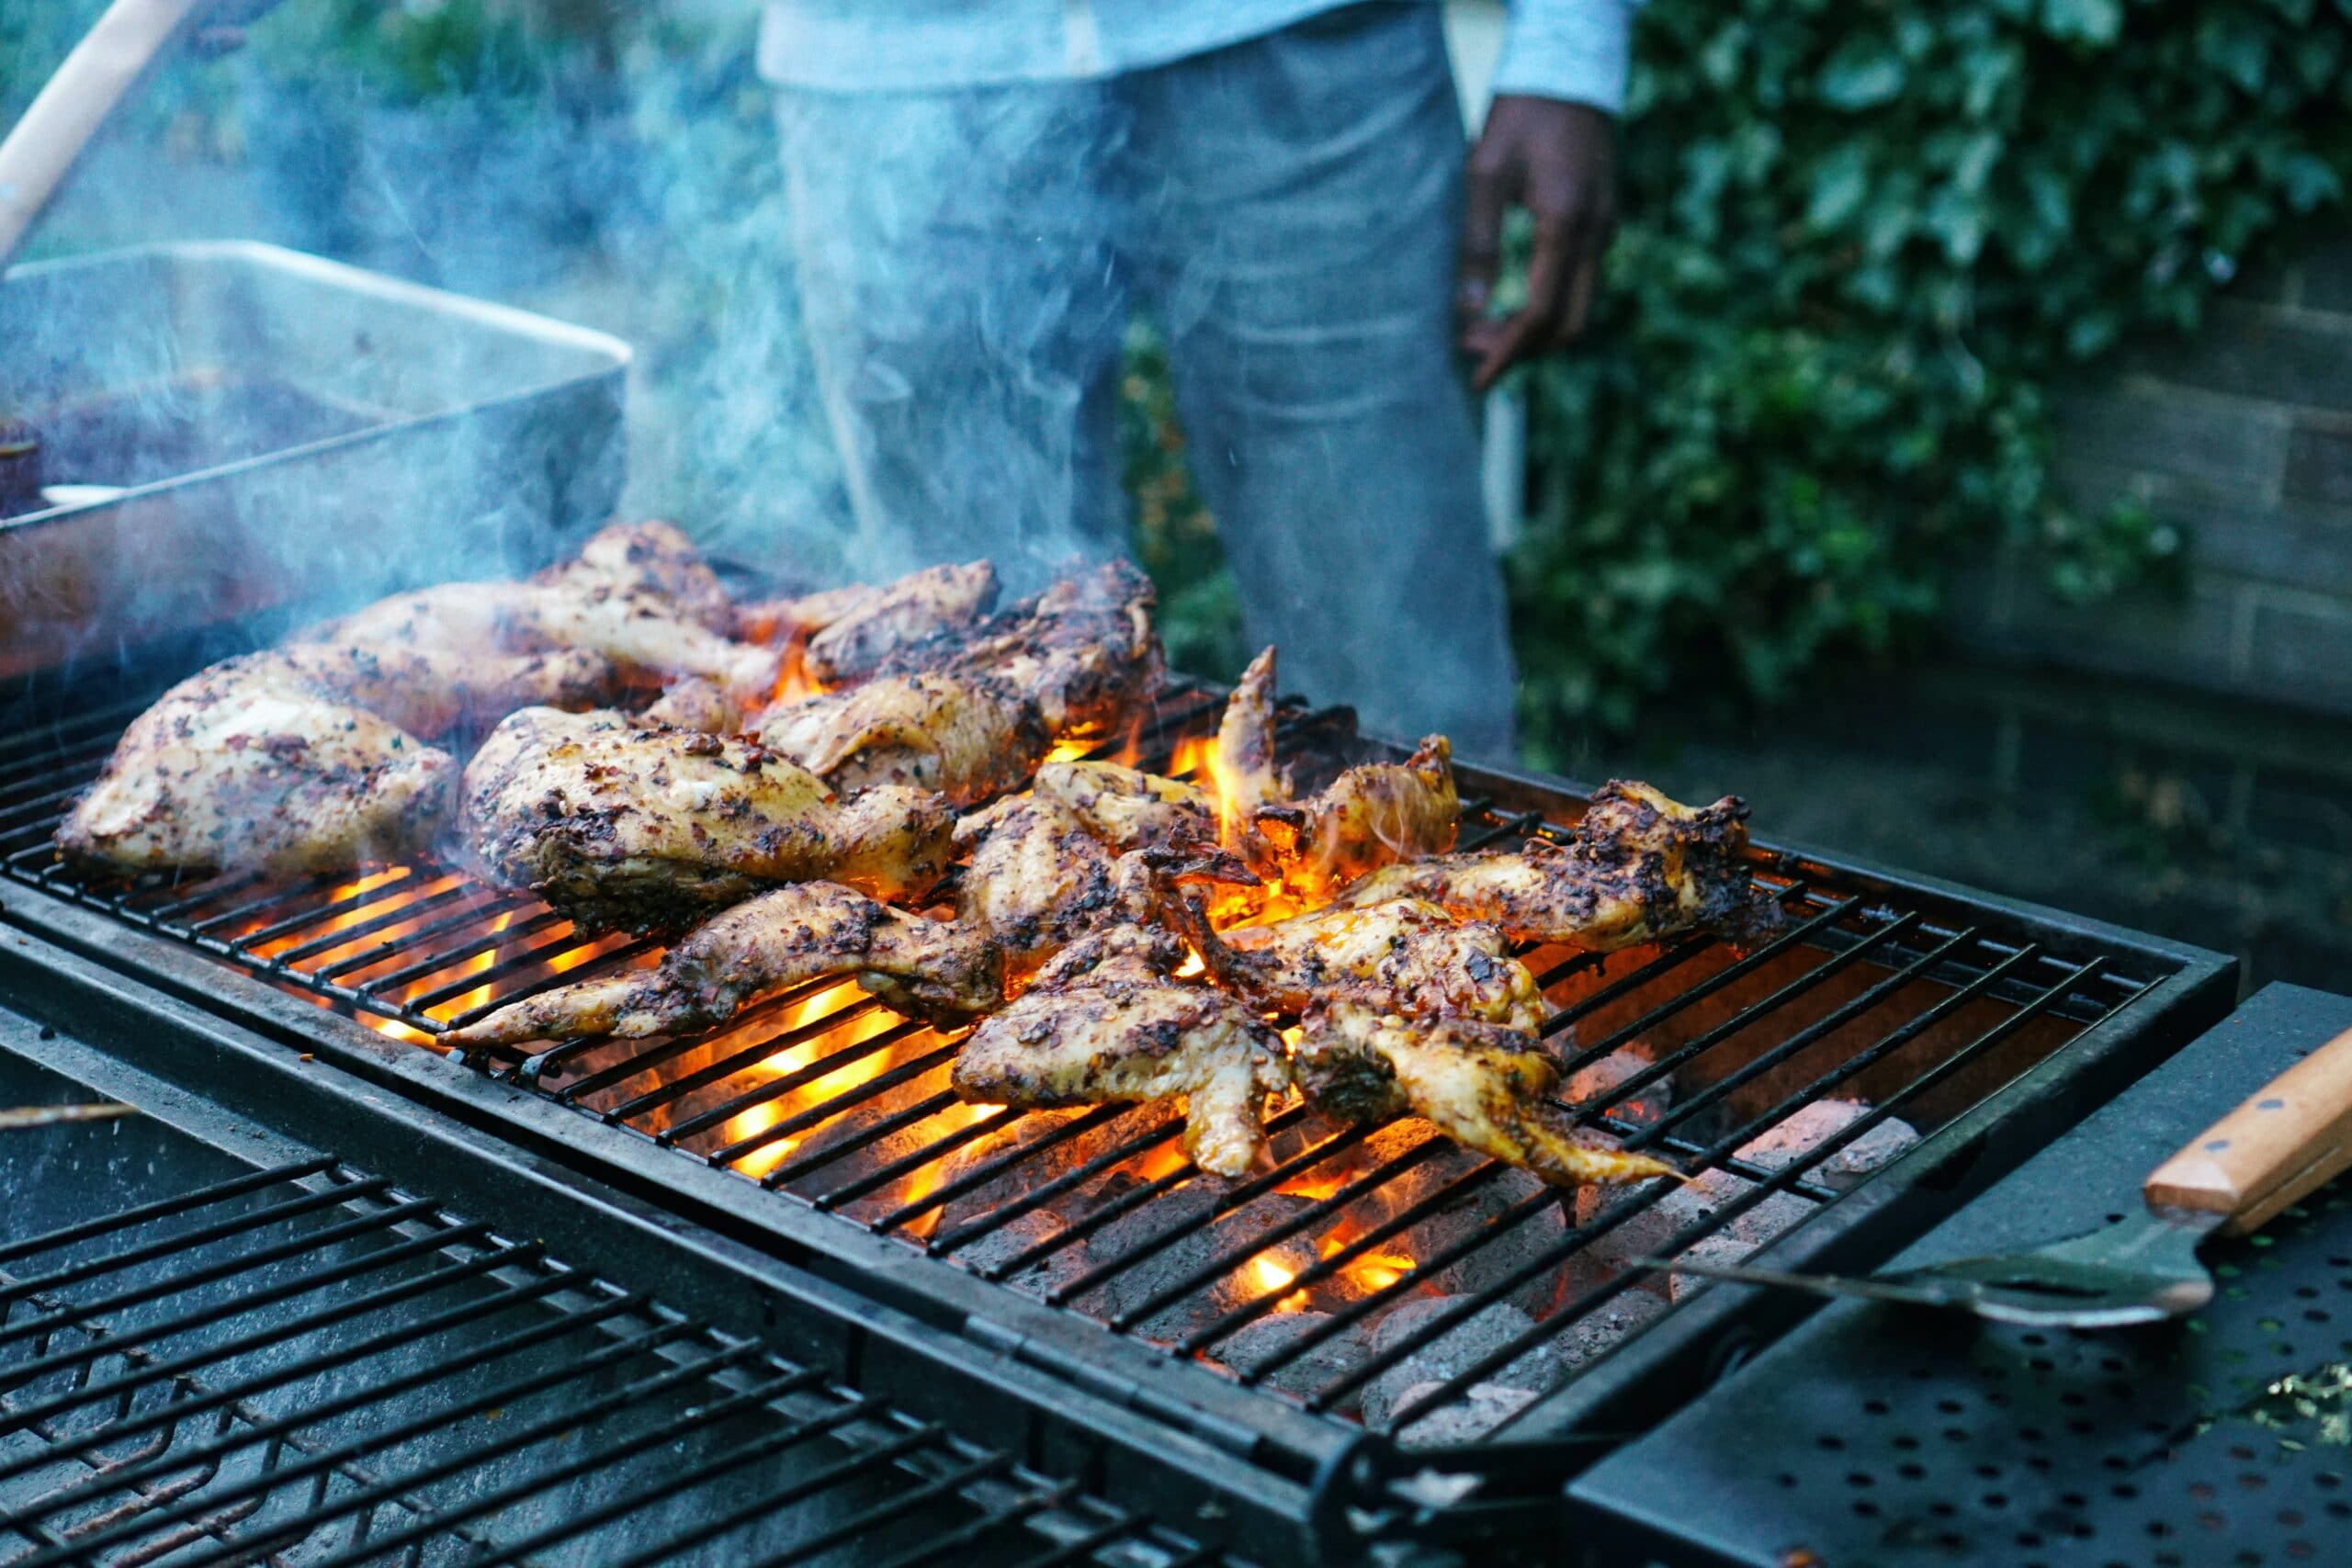 unknown person grilling chicken meat outdoors